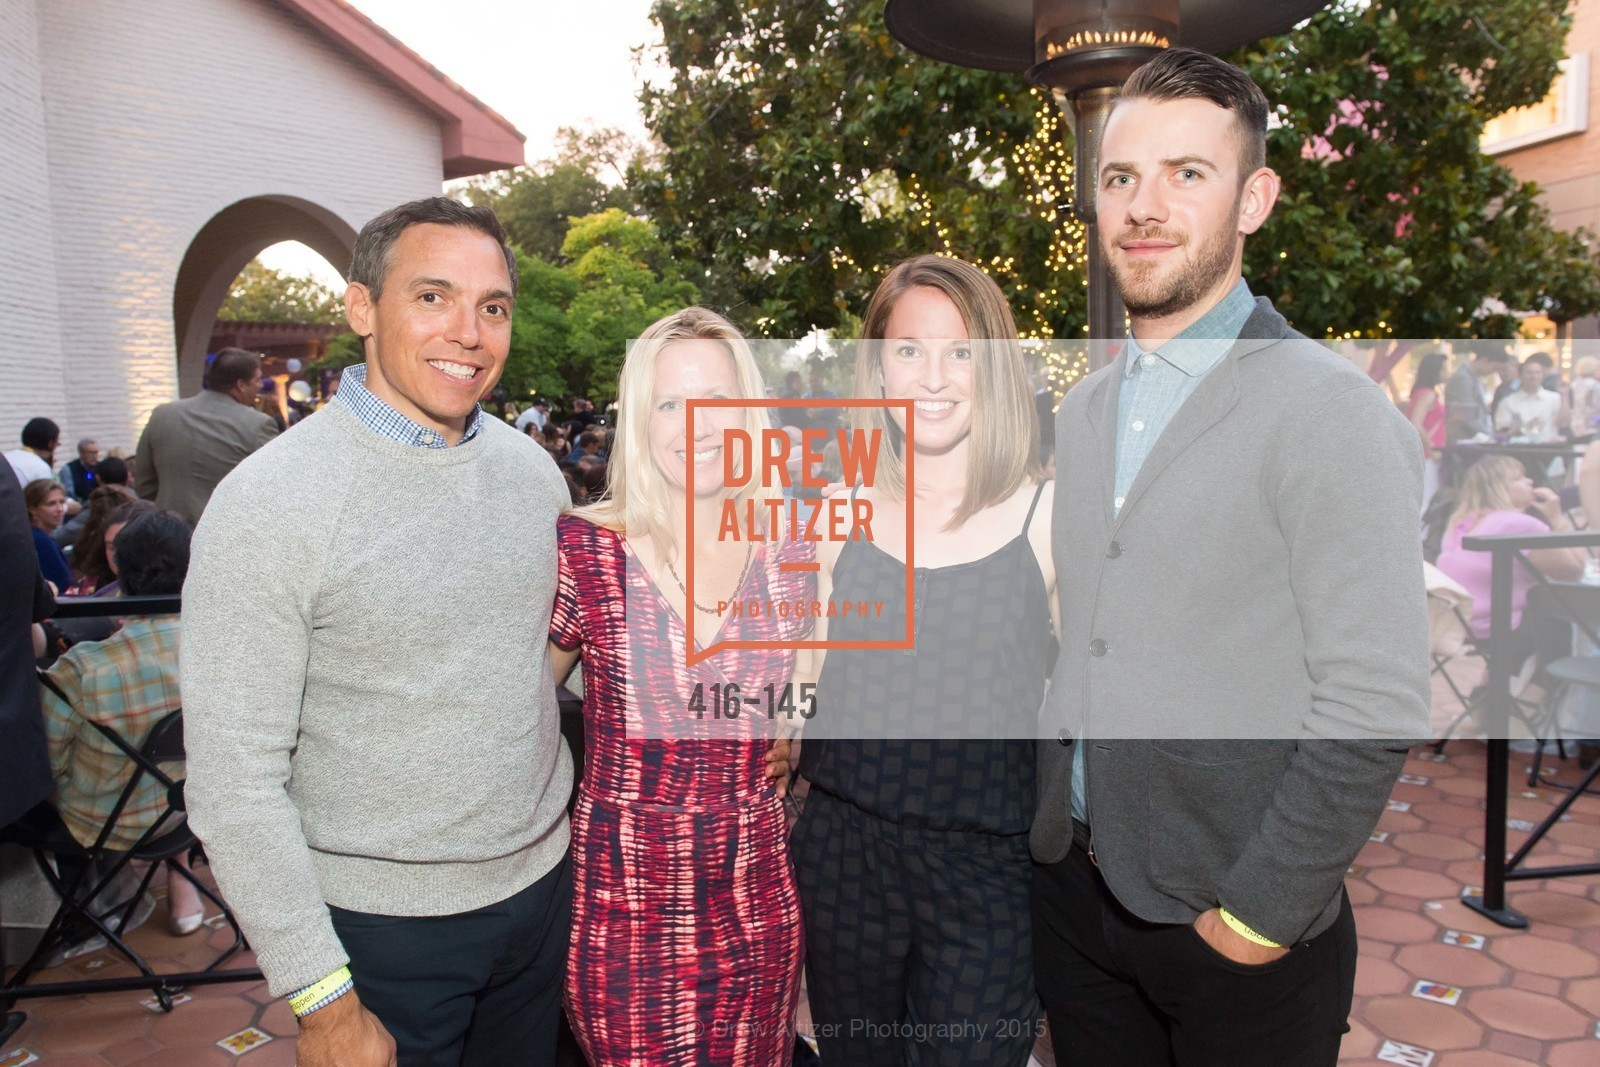 Tim Chappelle, Denise Chappelle, Tara Bownman, Matt Wiebe, DREAMS HAPPEN: Playhouse Auction and Gala, Stanford Shopping Center, June 5th, 2015,Drew Altizer, Drew Altizer Photography, full-service agency, private events, San Francisco photographer, photographer california